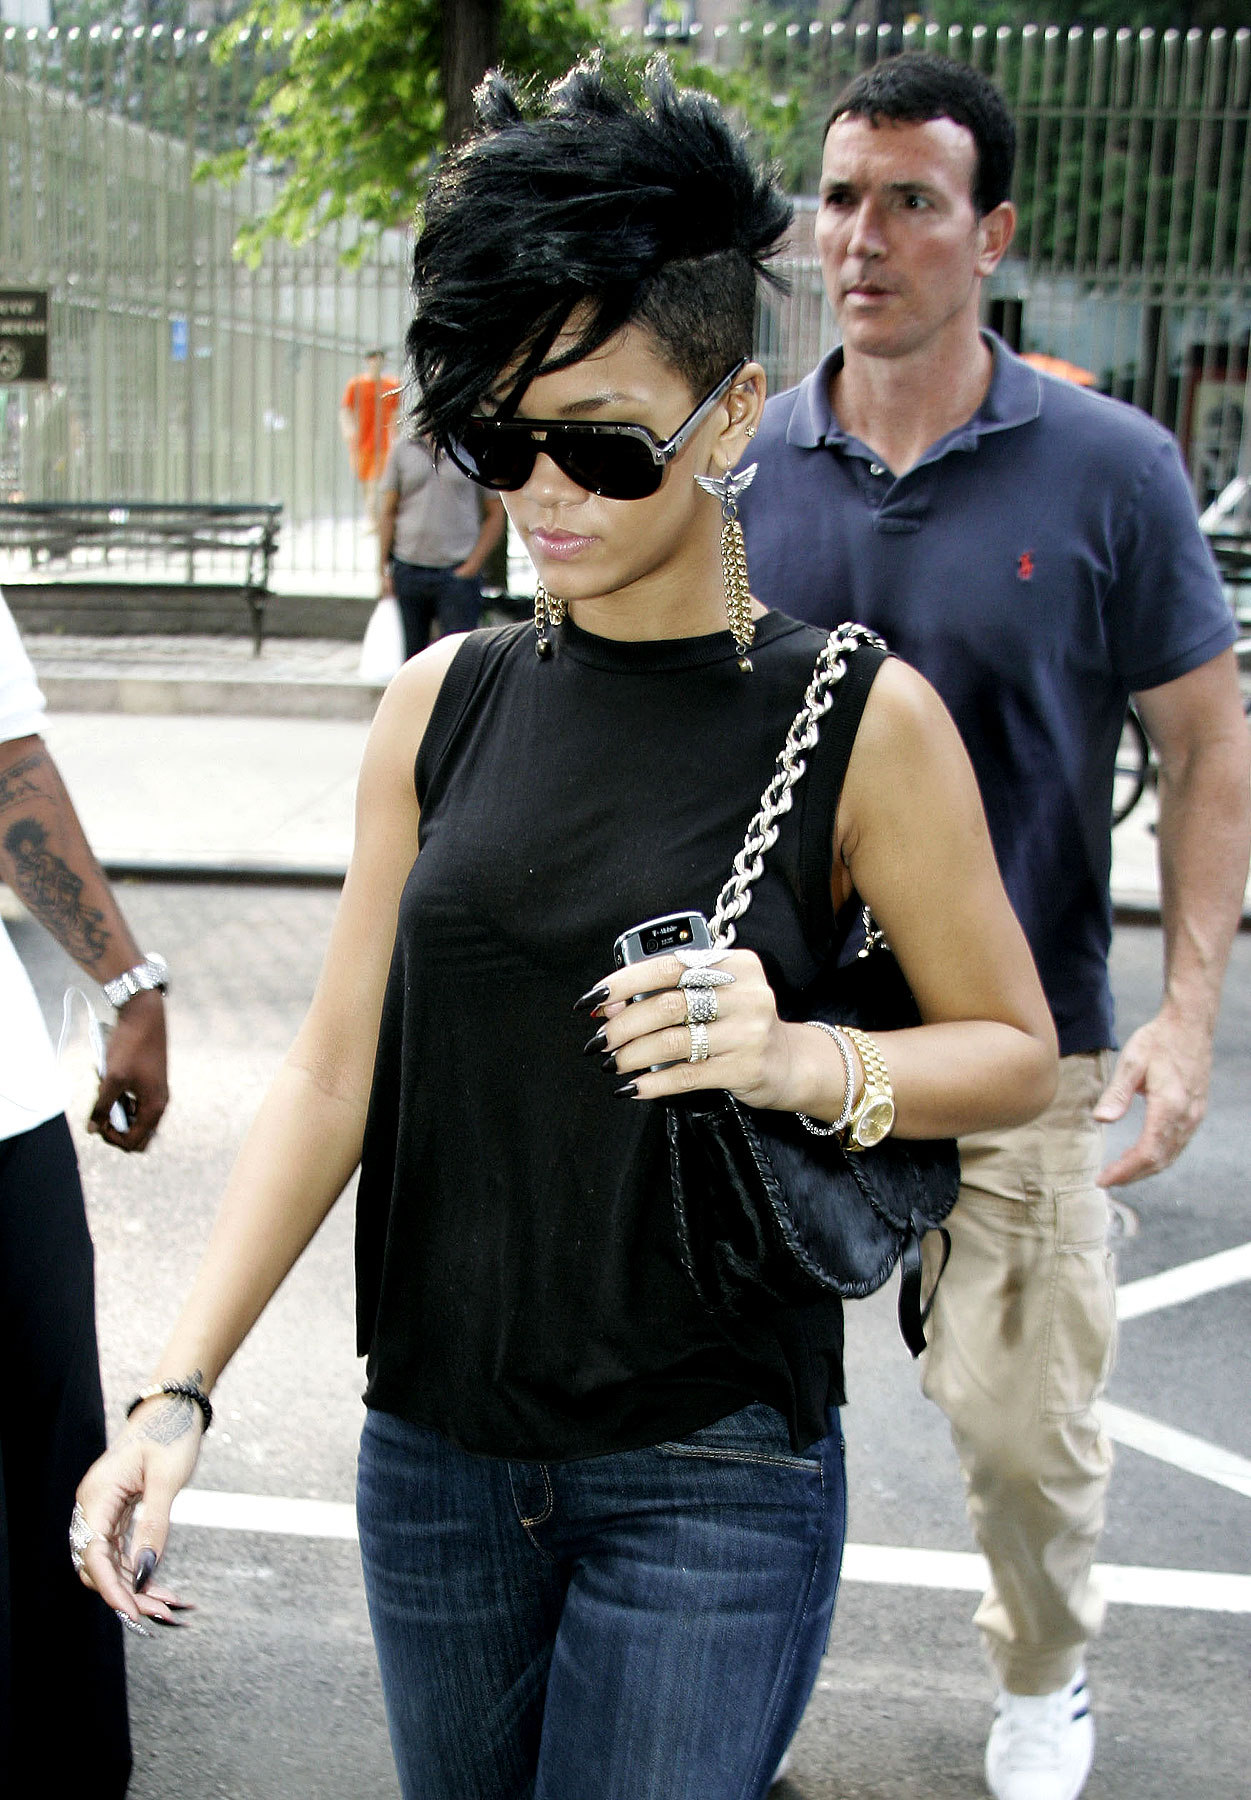 PHOTO GALLERY: Rihanna Shows Off Her Mohawk